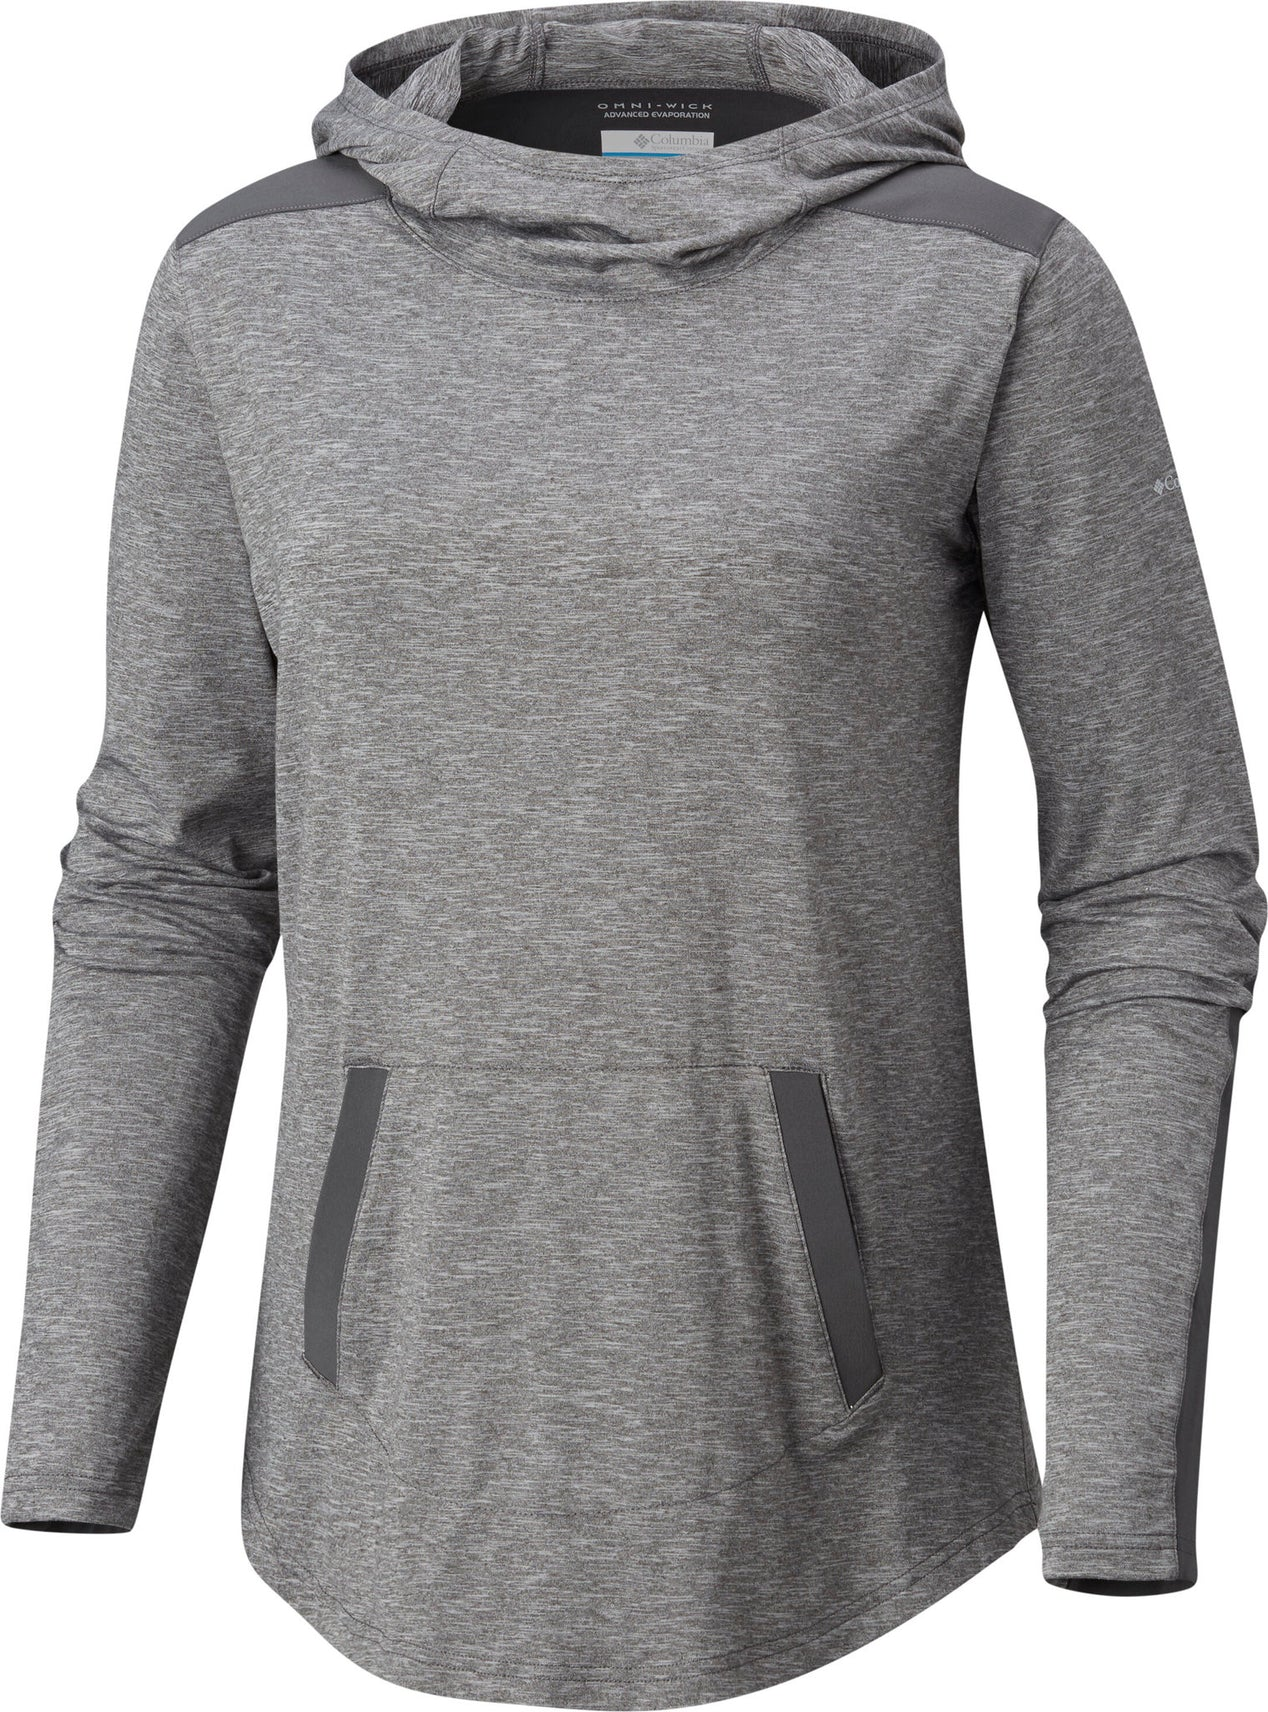 3b1c21a032 Columbia Place To Place Hoodie - Women s